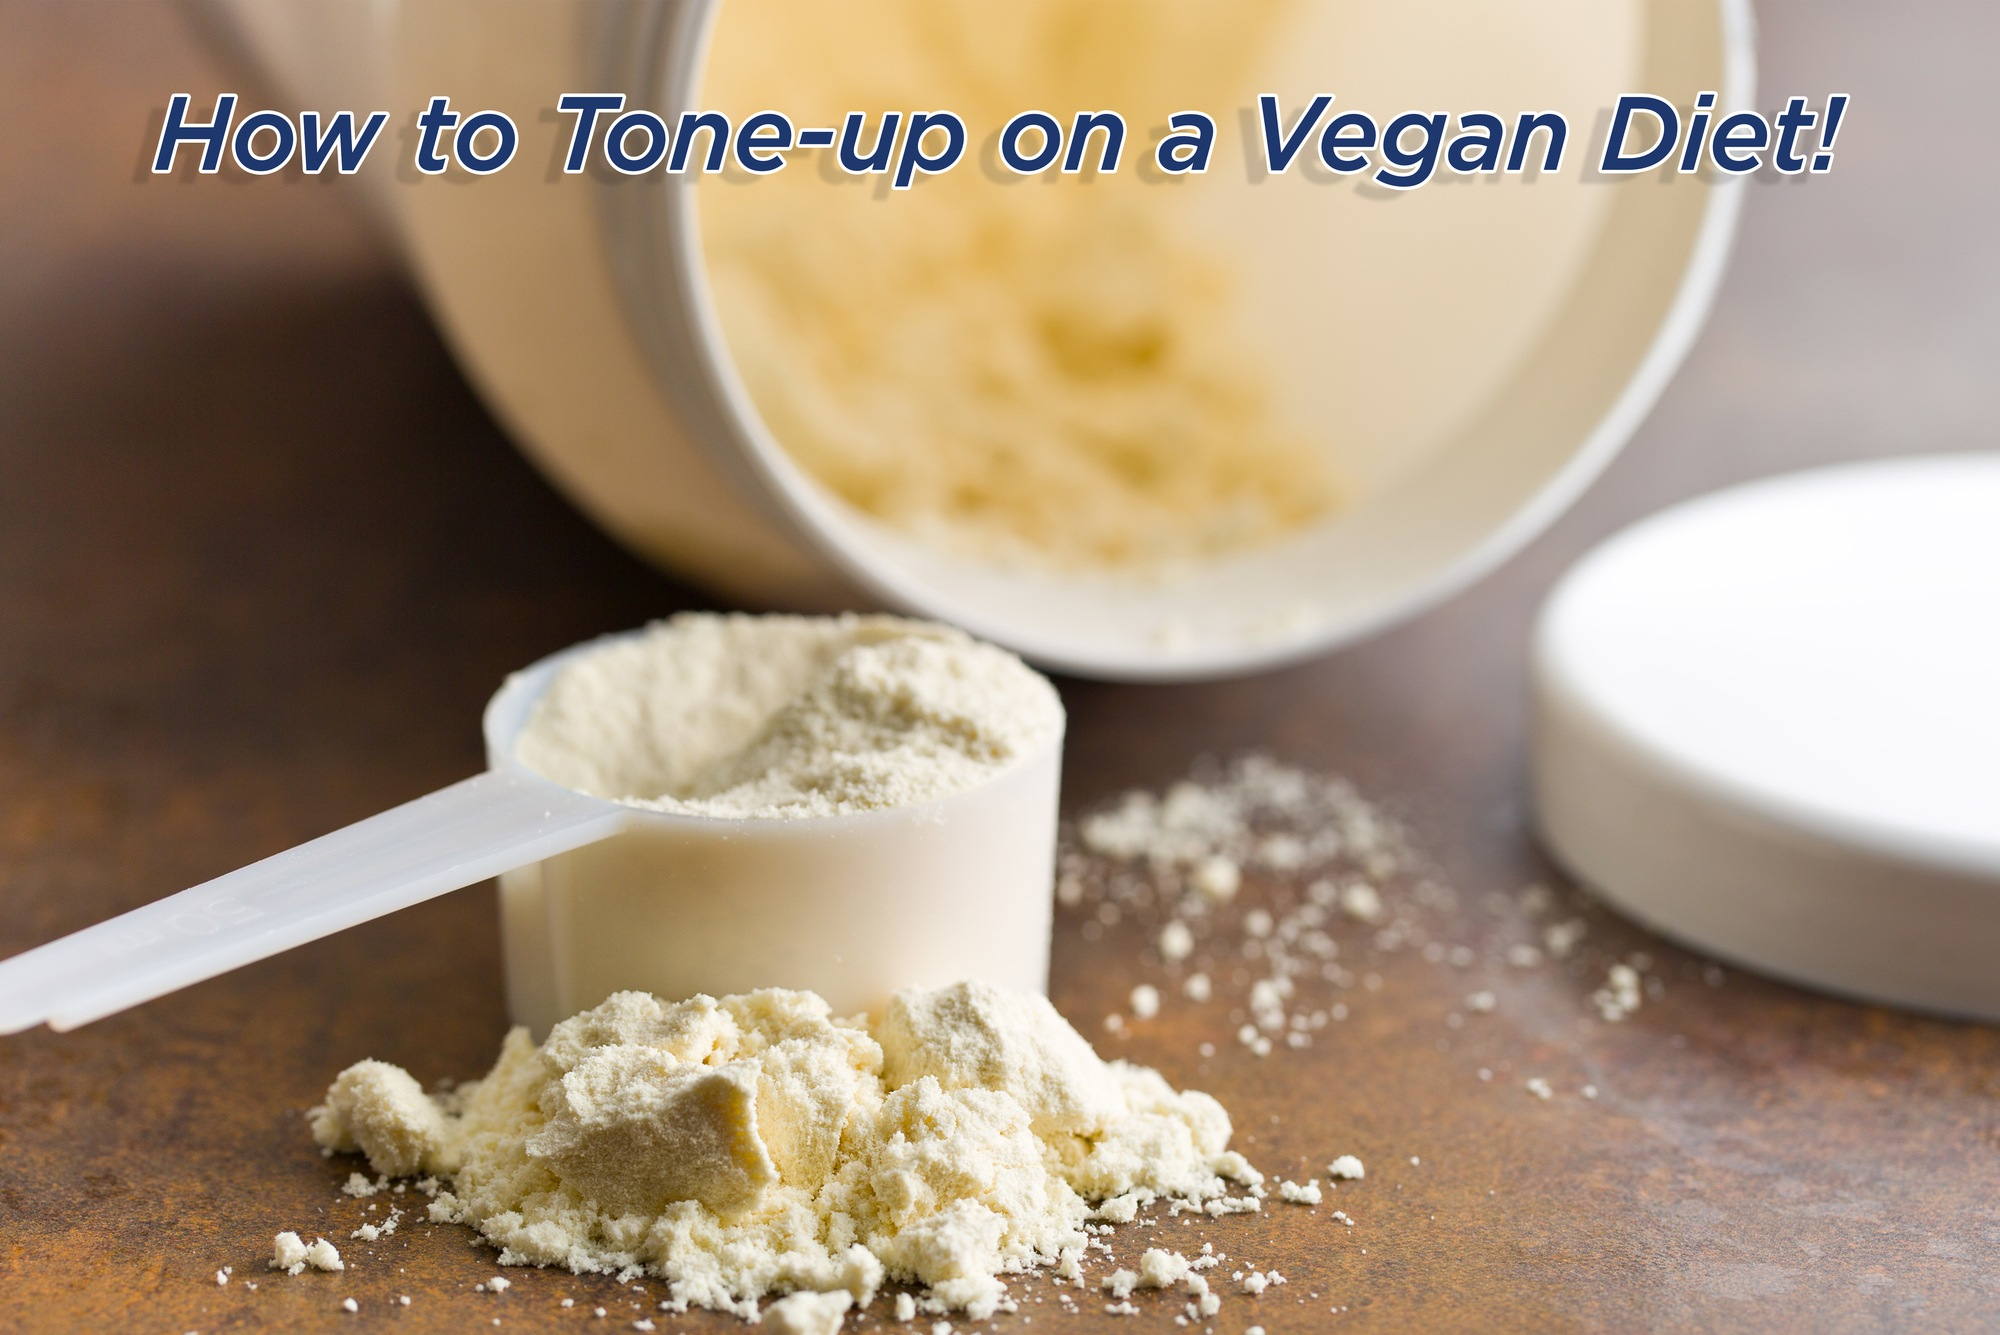 How to Tone-up on a Vegan Diet!